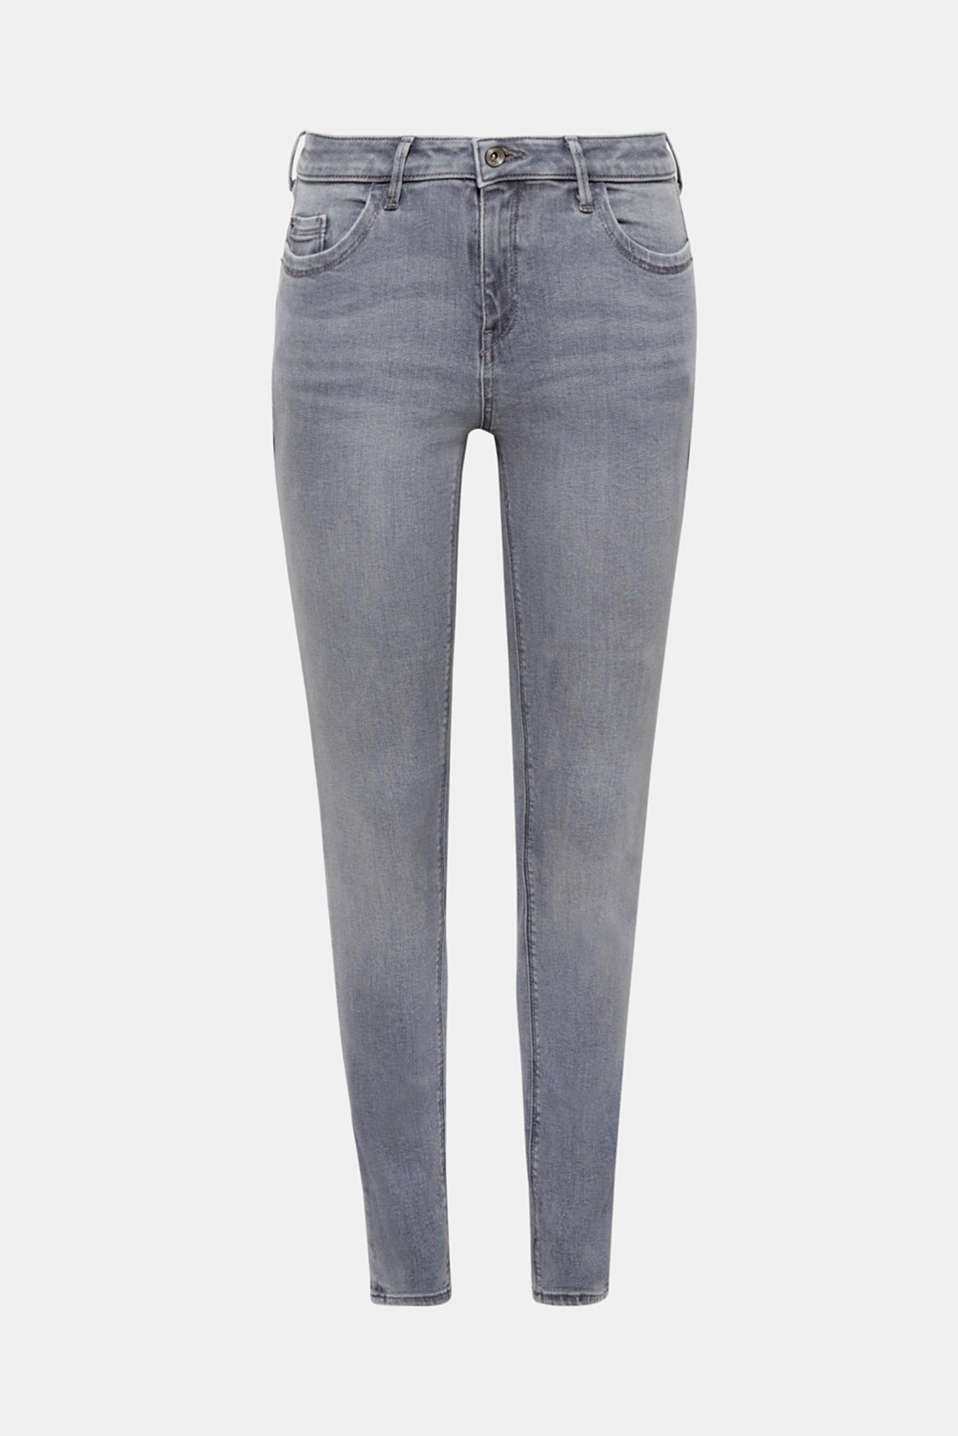 These skinny, five-pocket jeans made of figure-shaping, grey stretch denim guarantee a fantastic fit and a sensational, sexy silhouette.